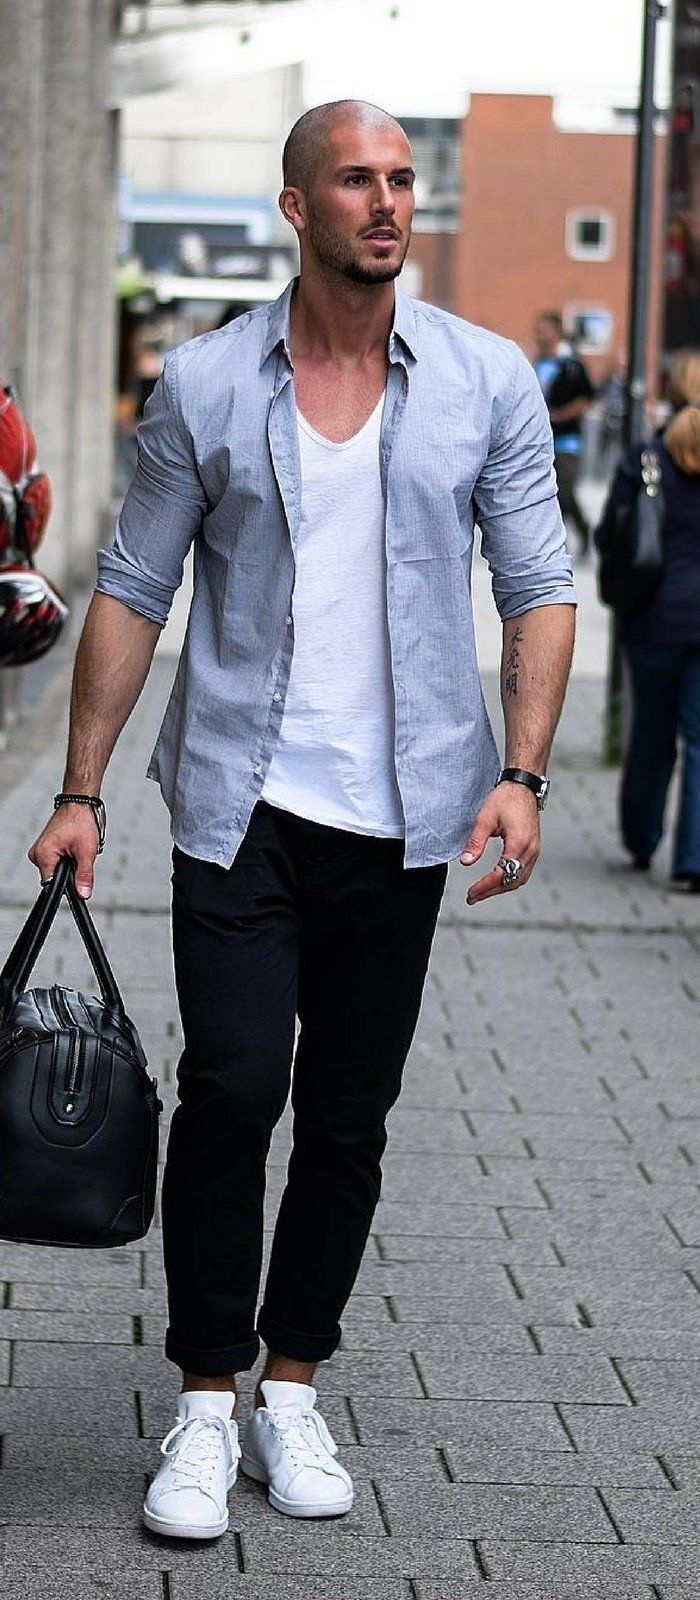 13 Coolest Casual Street Styles For Men Summer Outfits Men Bald Men Style Mens Fashion Summer [ 1600 x 700 Pixel ]